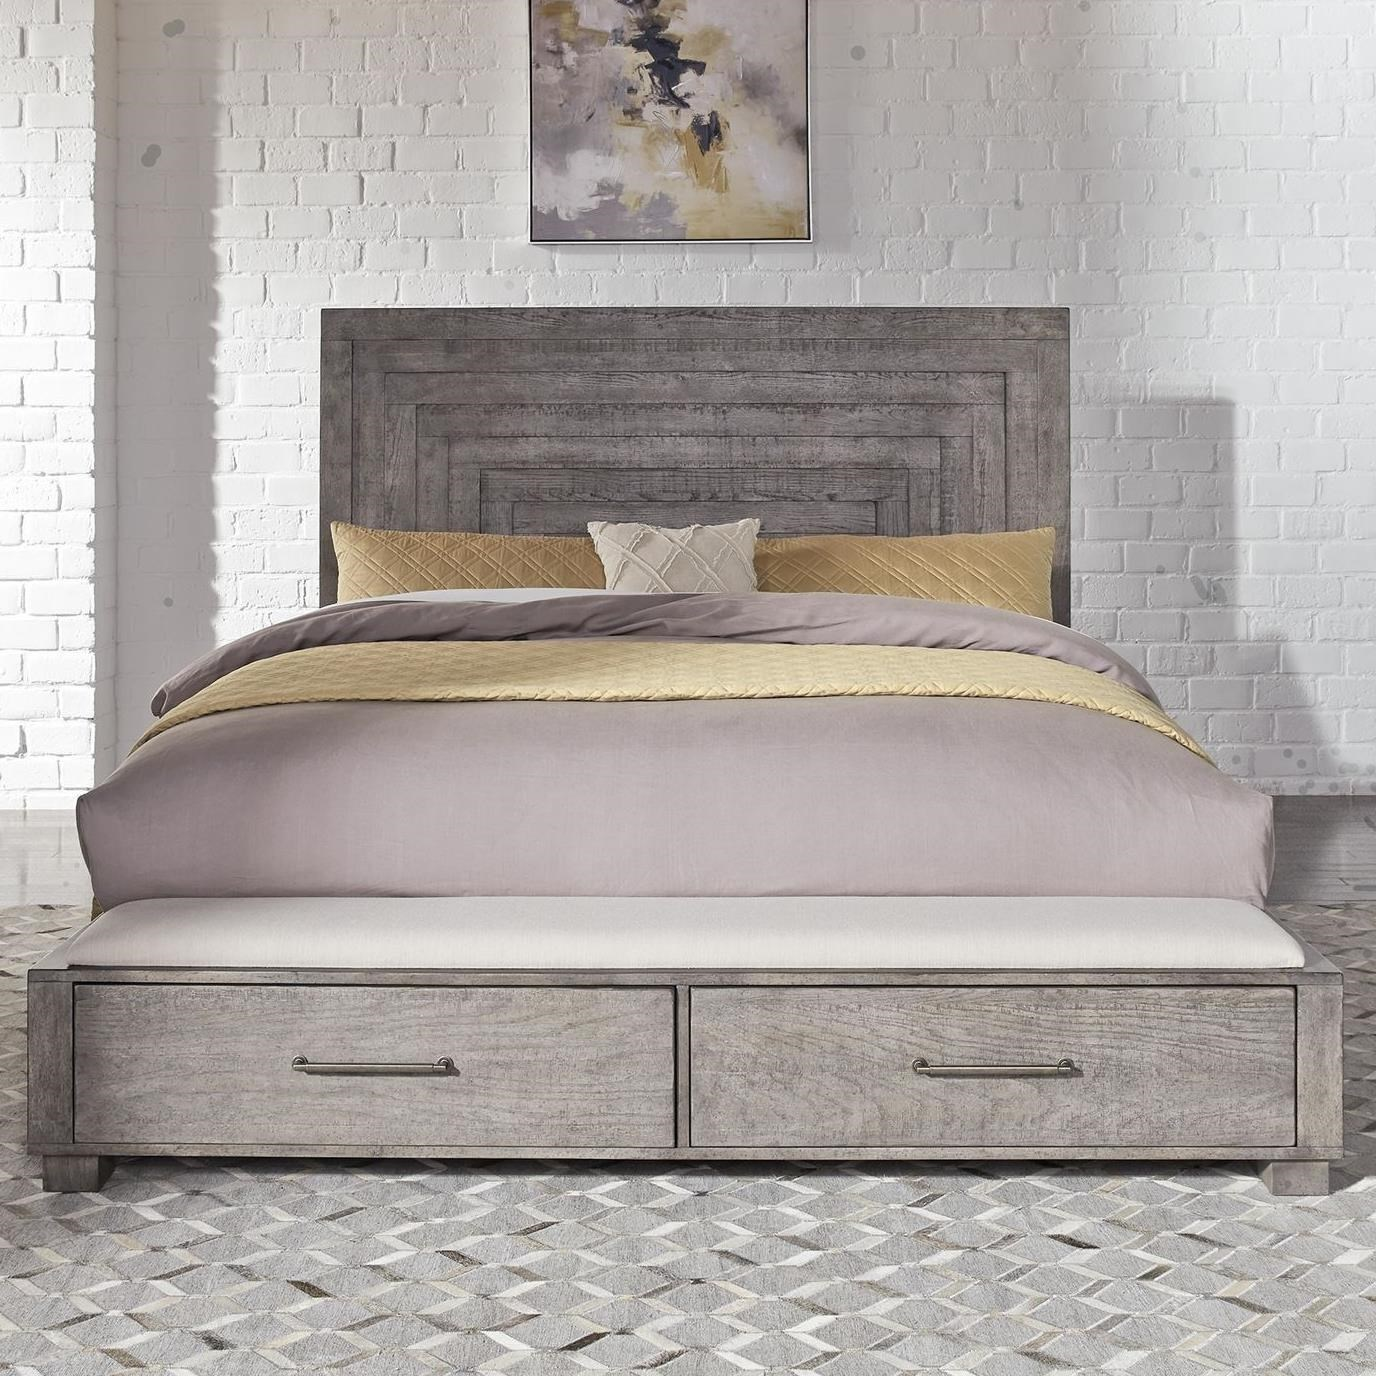 Picture of: Liberty Furniture Modern Farmhouse 406 Br Ksb Contemporary King Storage Bed With 2 Footboard Drawers Thornton Furniture Platform Beds Low Profile Beds